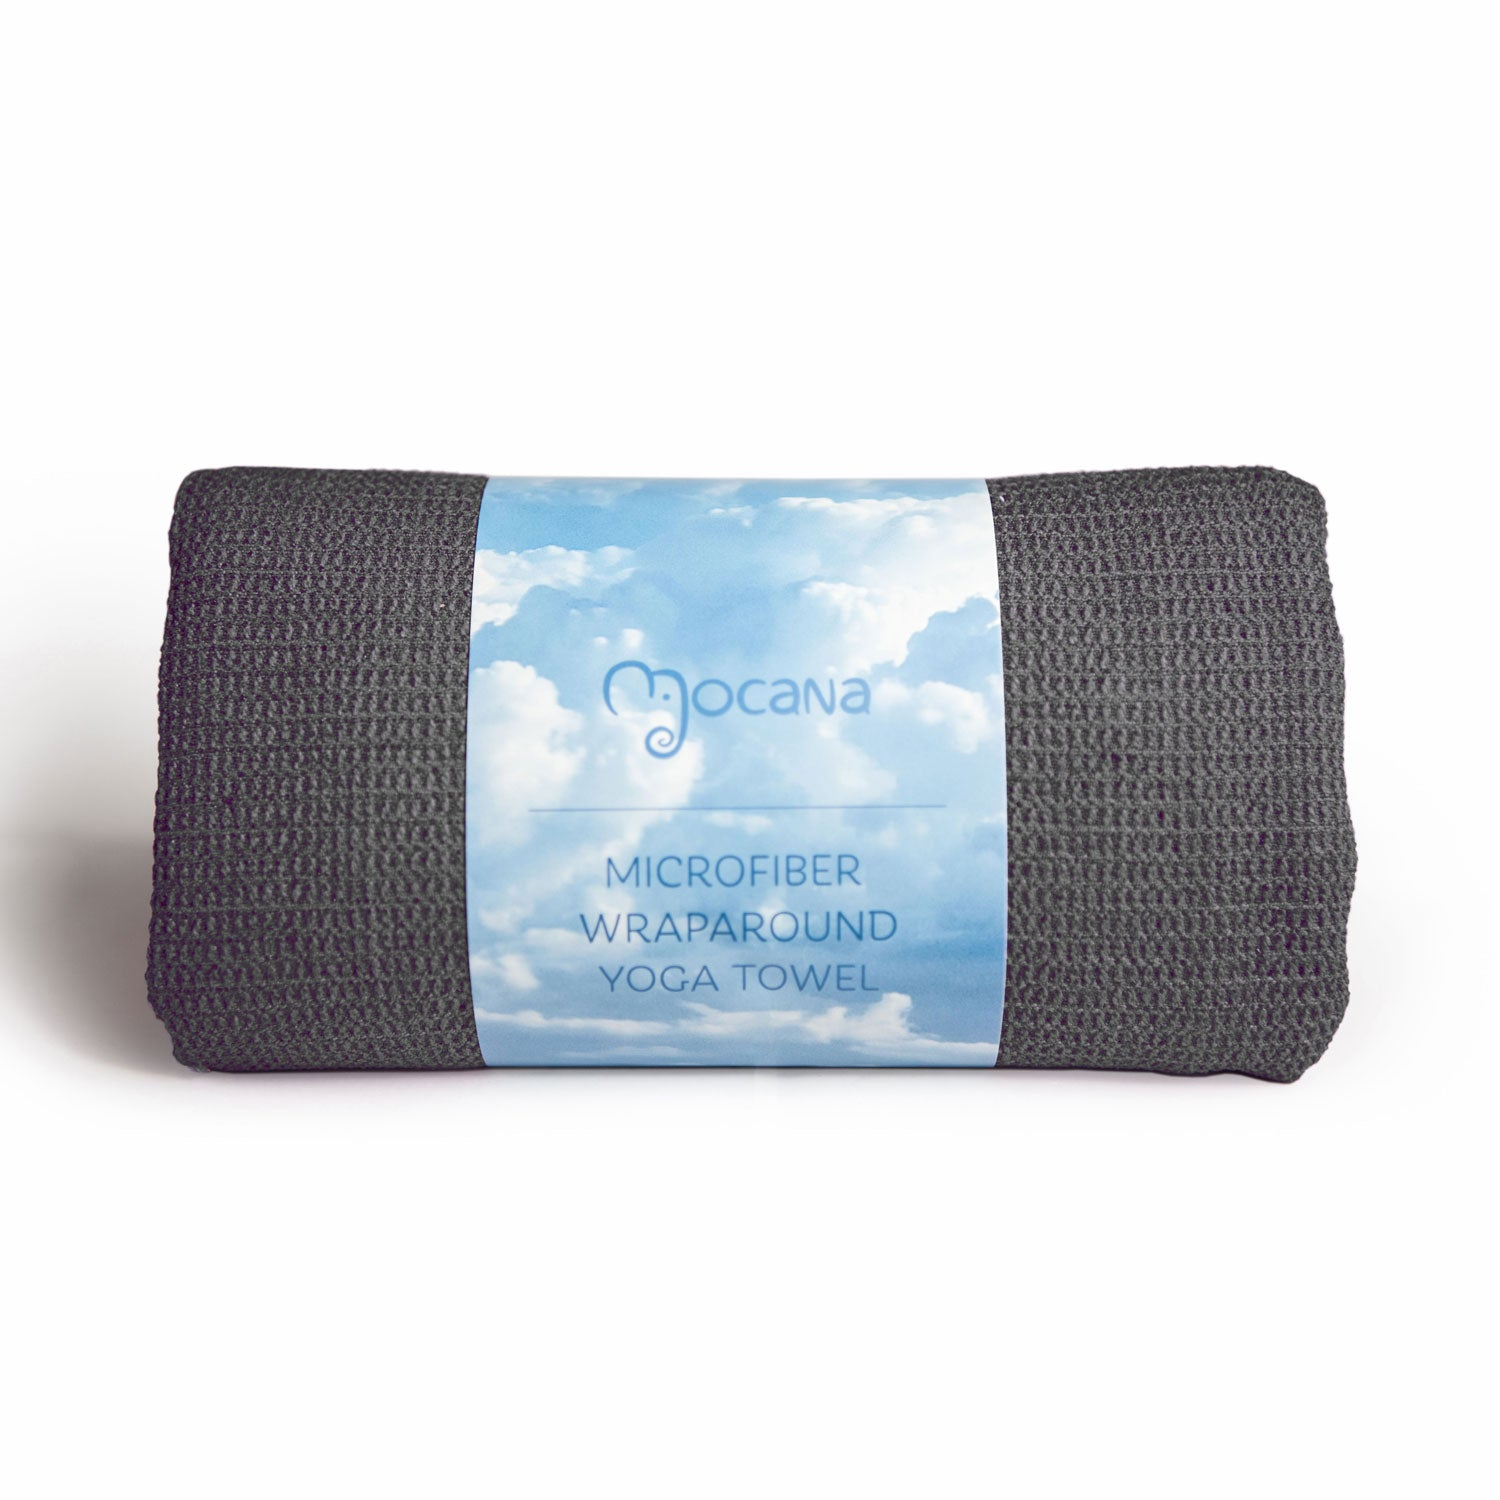 The Mocana Wraparound Towel